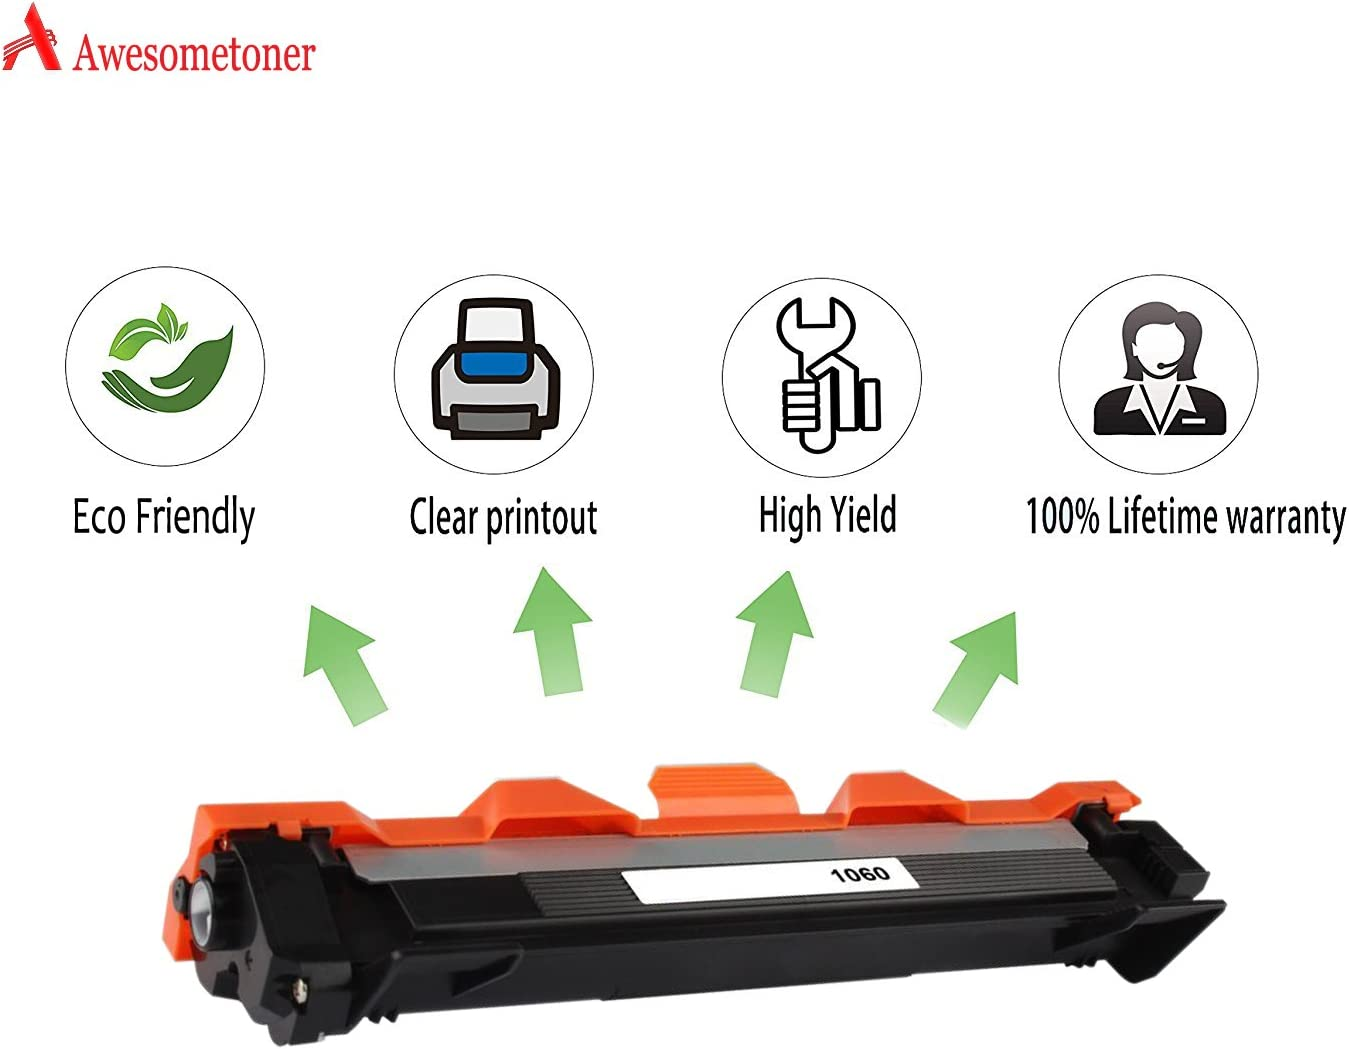 1112 Black, 5-Pack Awesometoner Compatible Toner Cartridge Replacement for Brother TN1060 use with HL-1110